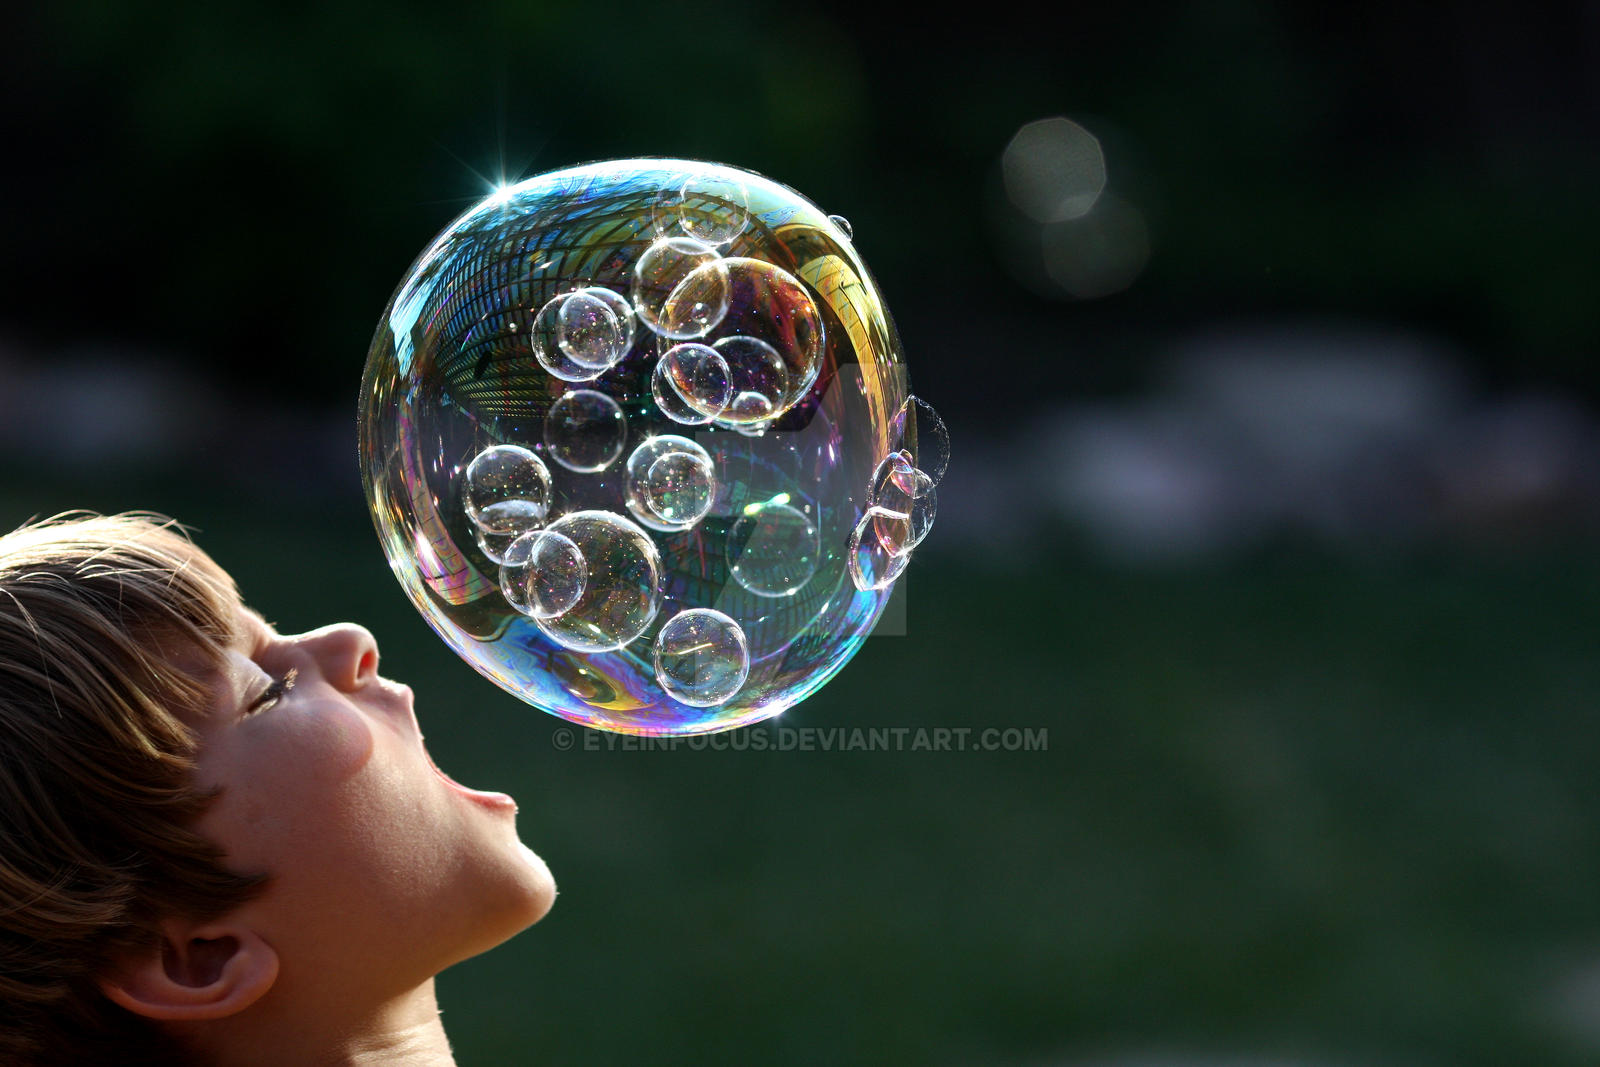 Can you swallow this bubble? by EyeInFocus